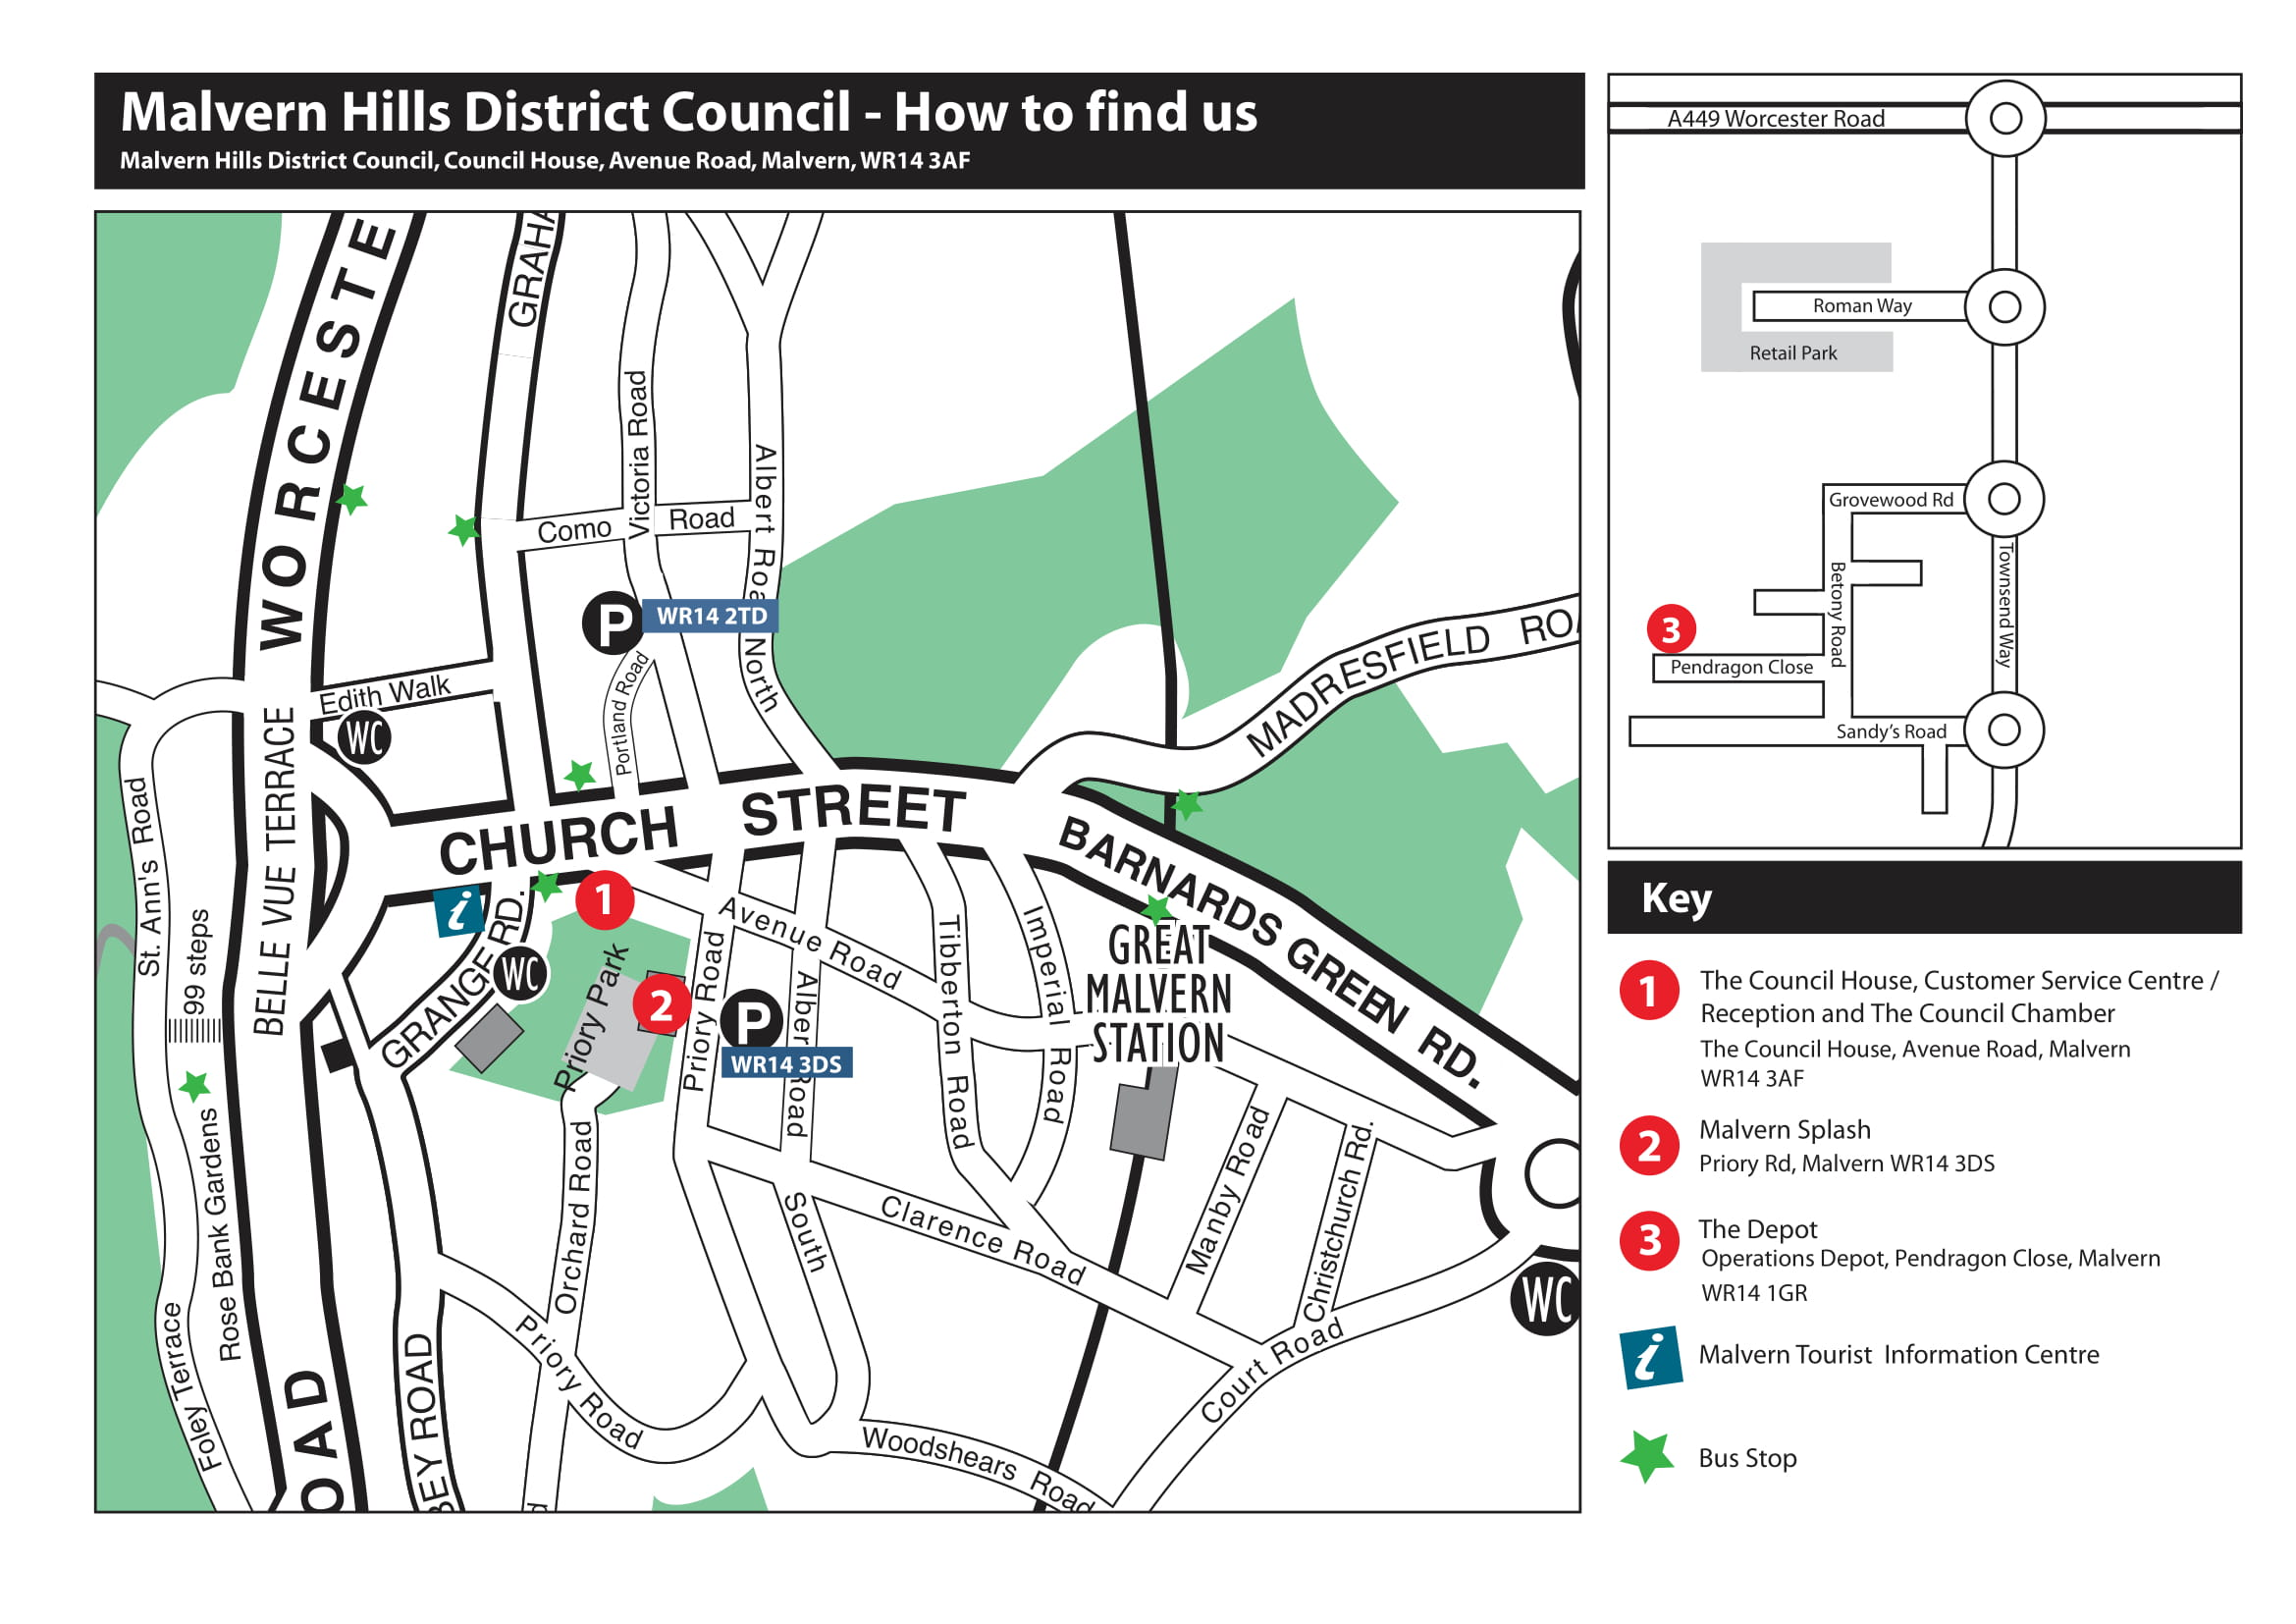 Malvern Hills District Council Travel map - how to find us